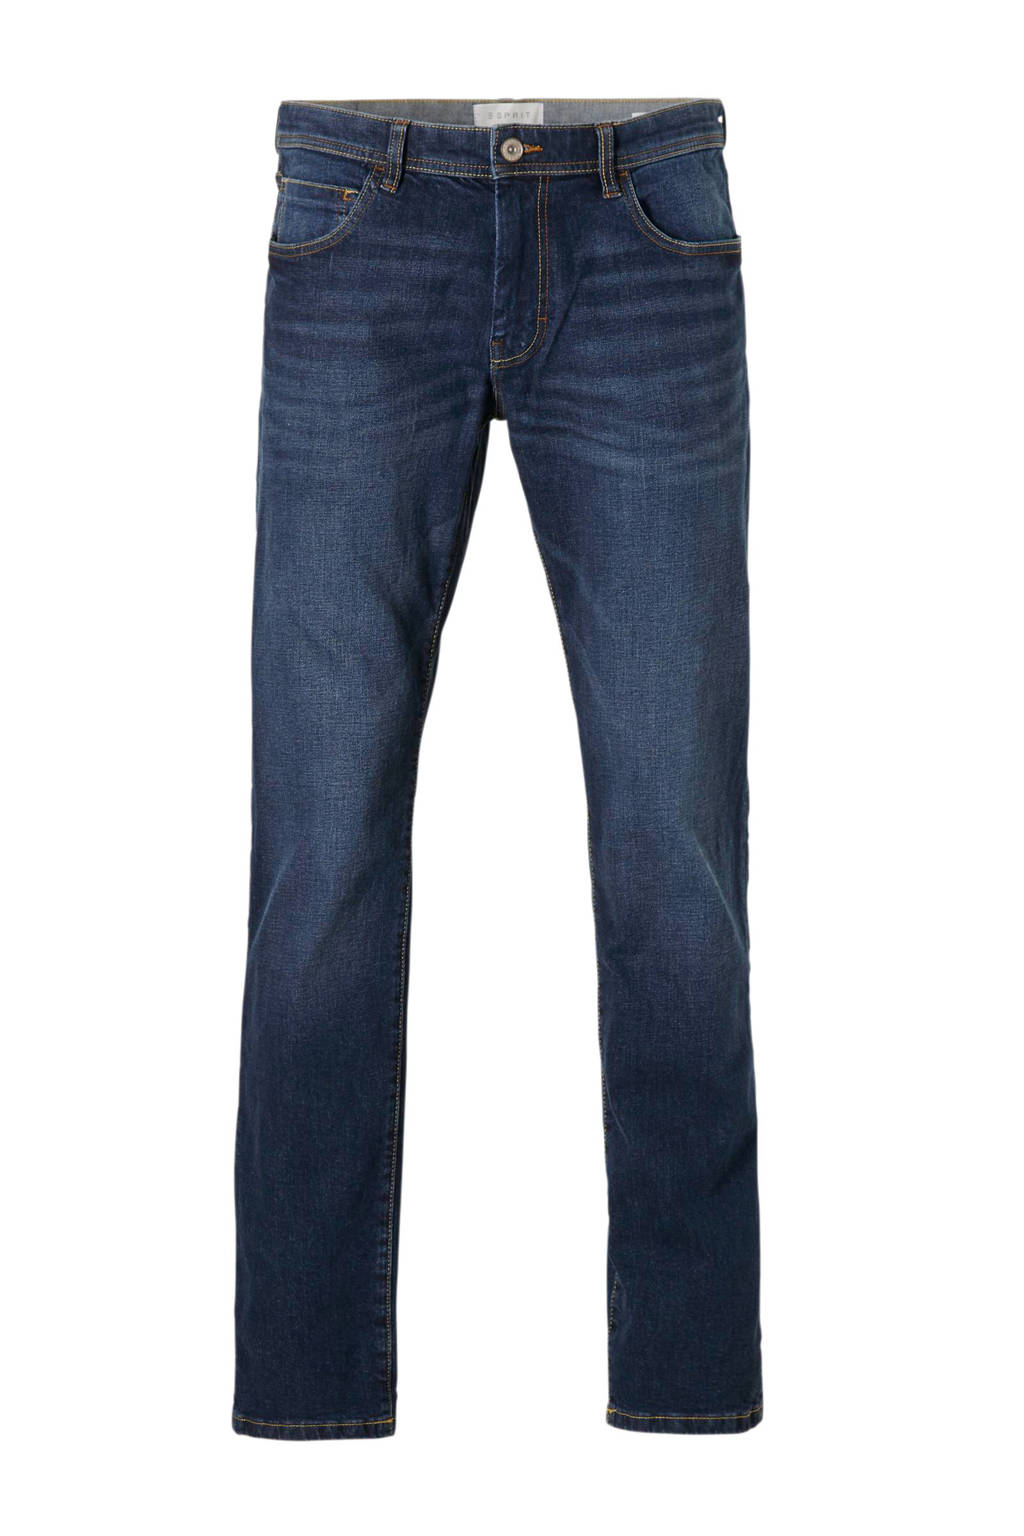 ESPRIT Men Casual straight fit jeans, Dark denim